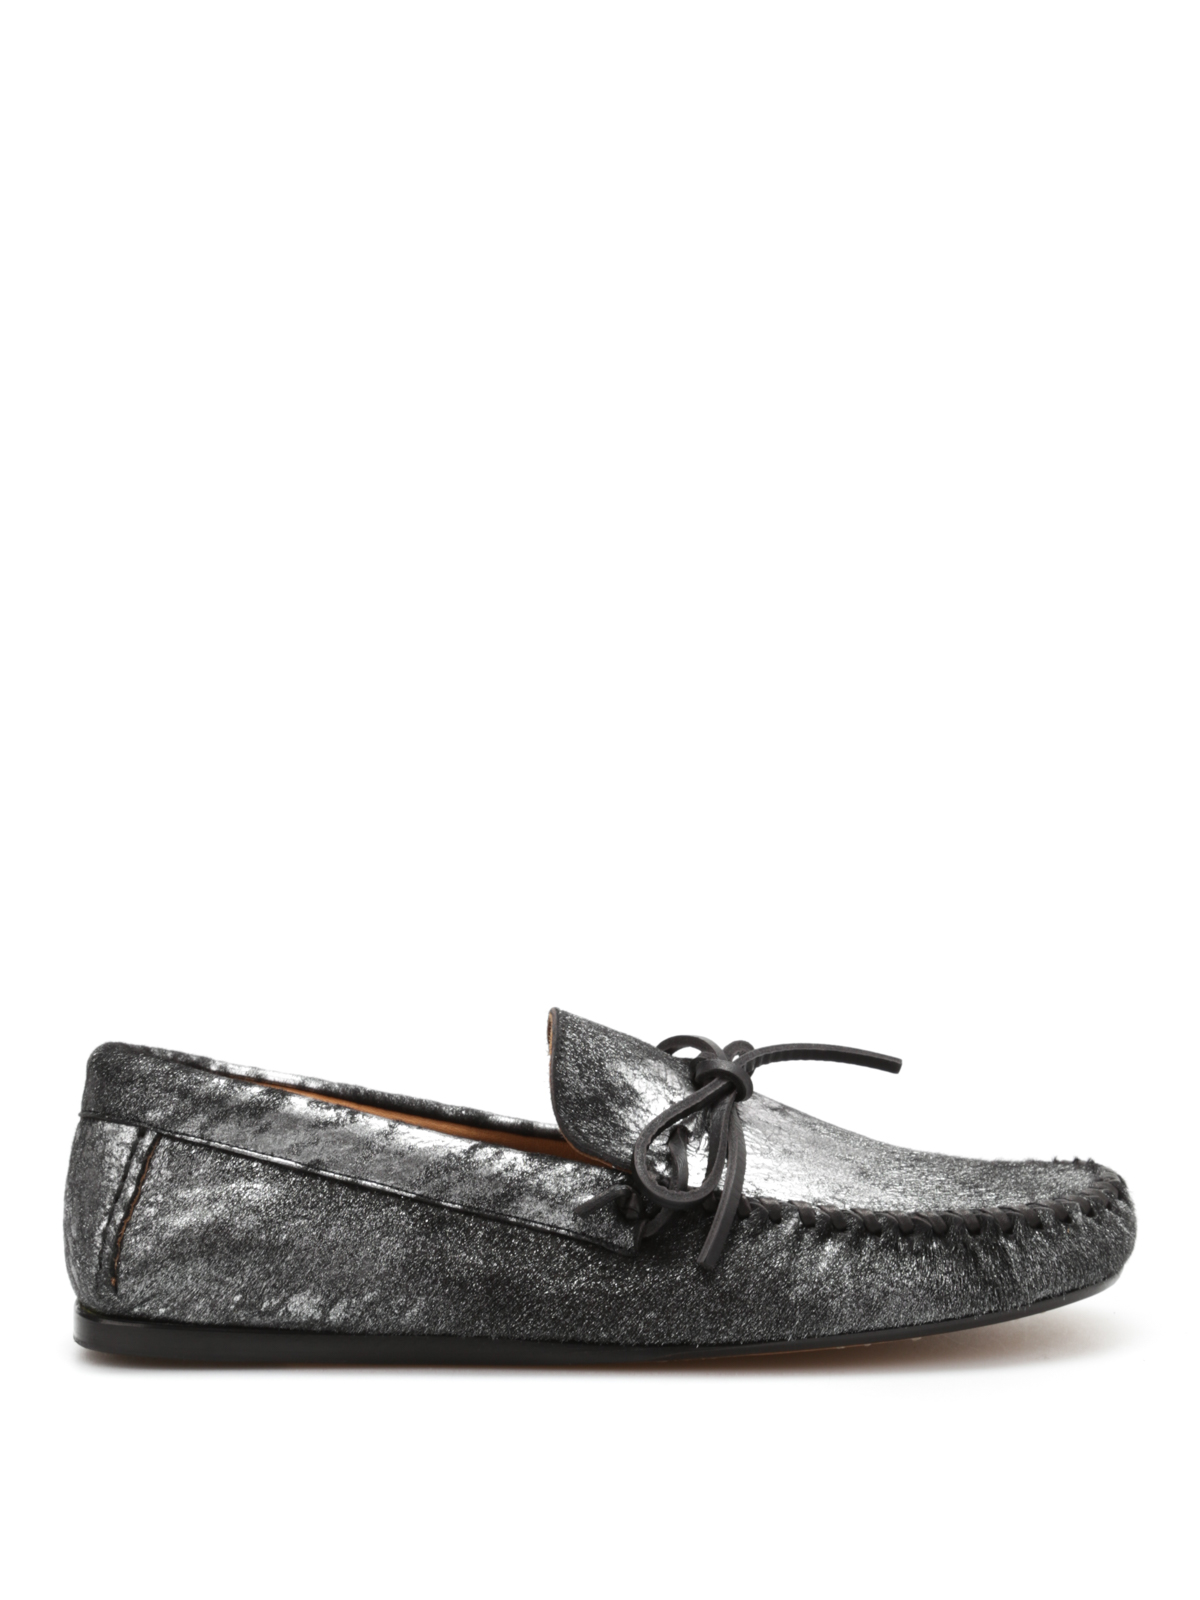 cc09151ef7e1f Isabel marant etoile - Fodih mocassins - Loafers   Slippers - MC0021 ...